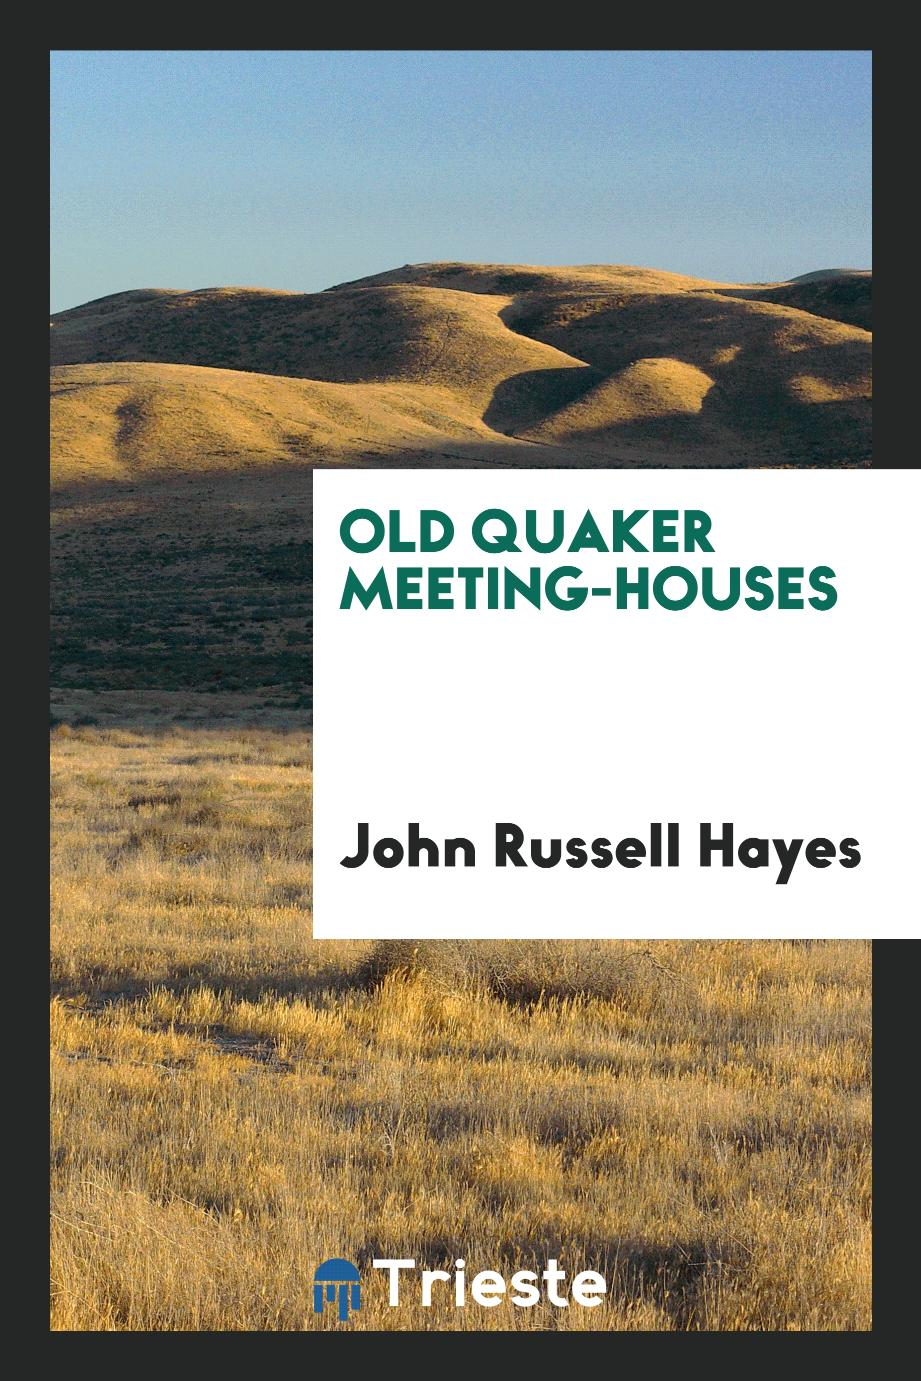 Old Quaker meeting-houses